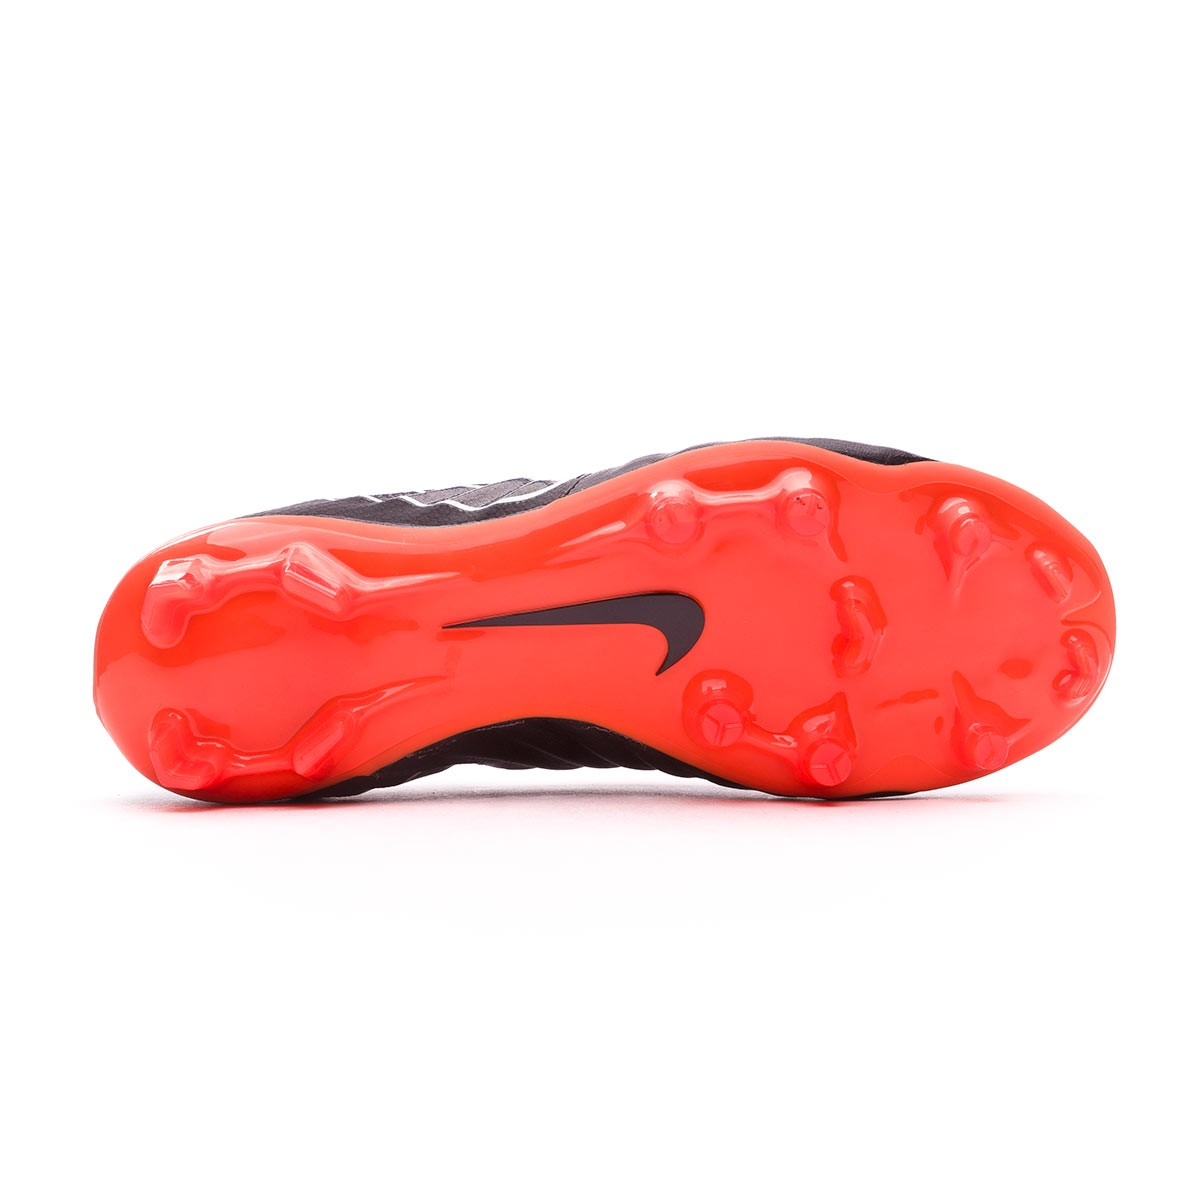 Boot Nike Kids Tiempo Legend VII Elite FG Black-Total orange-Black-White -  Leaked soccer 917934b79a6f